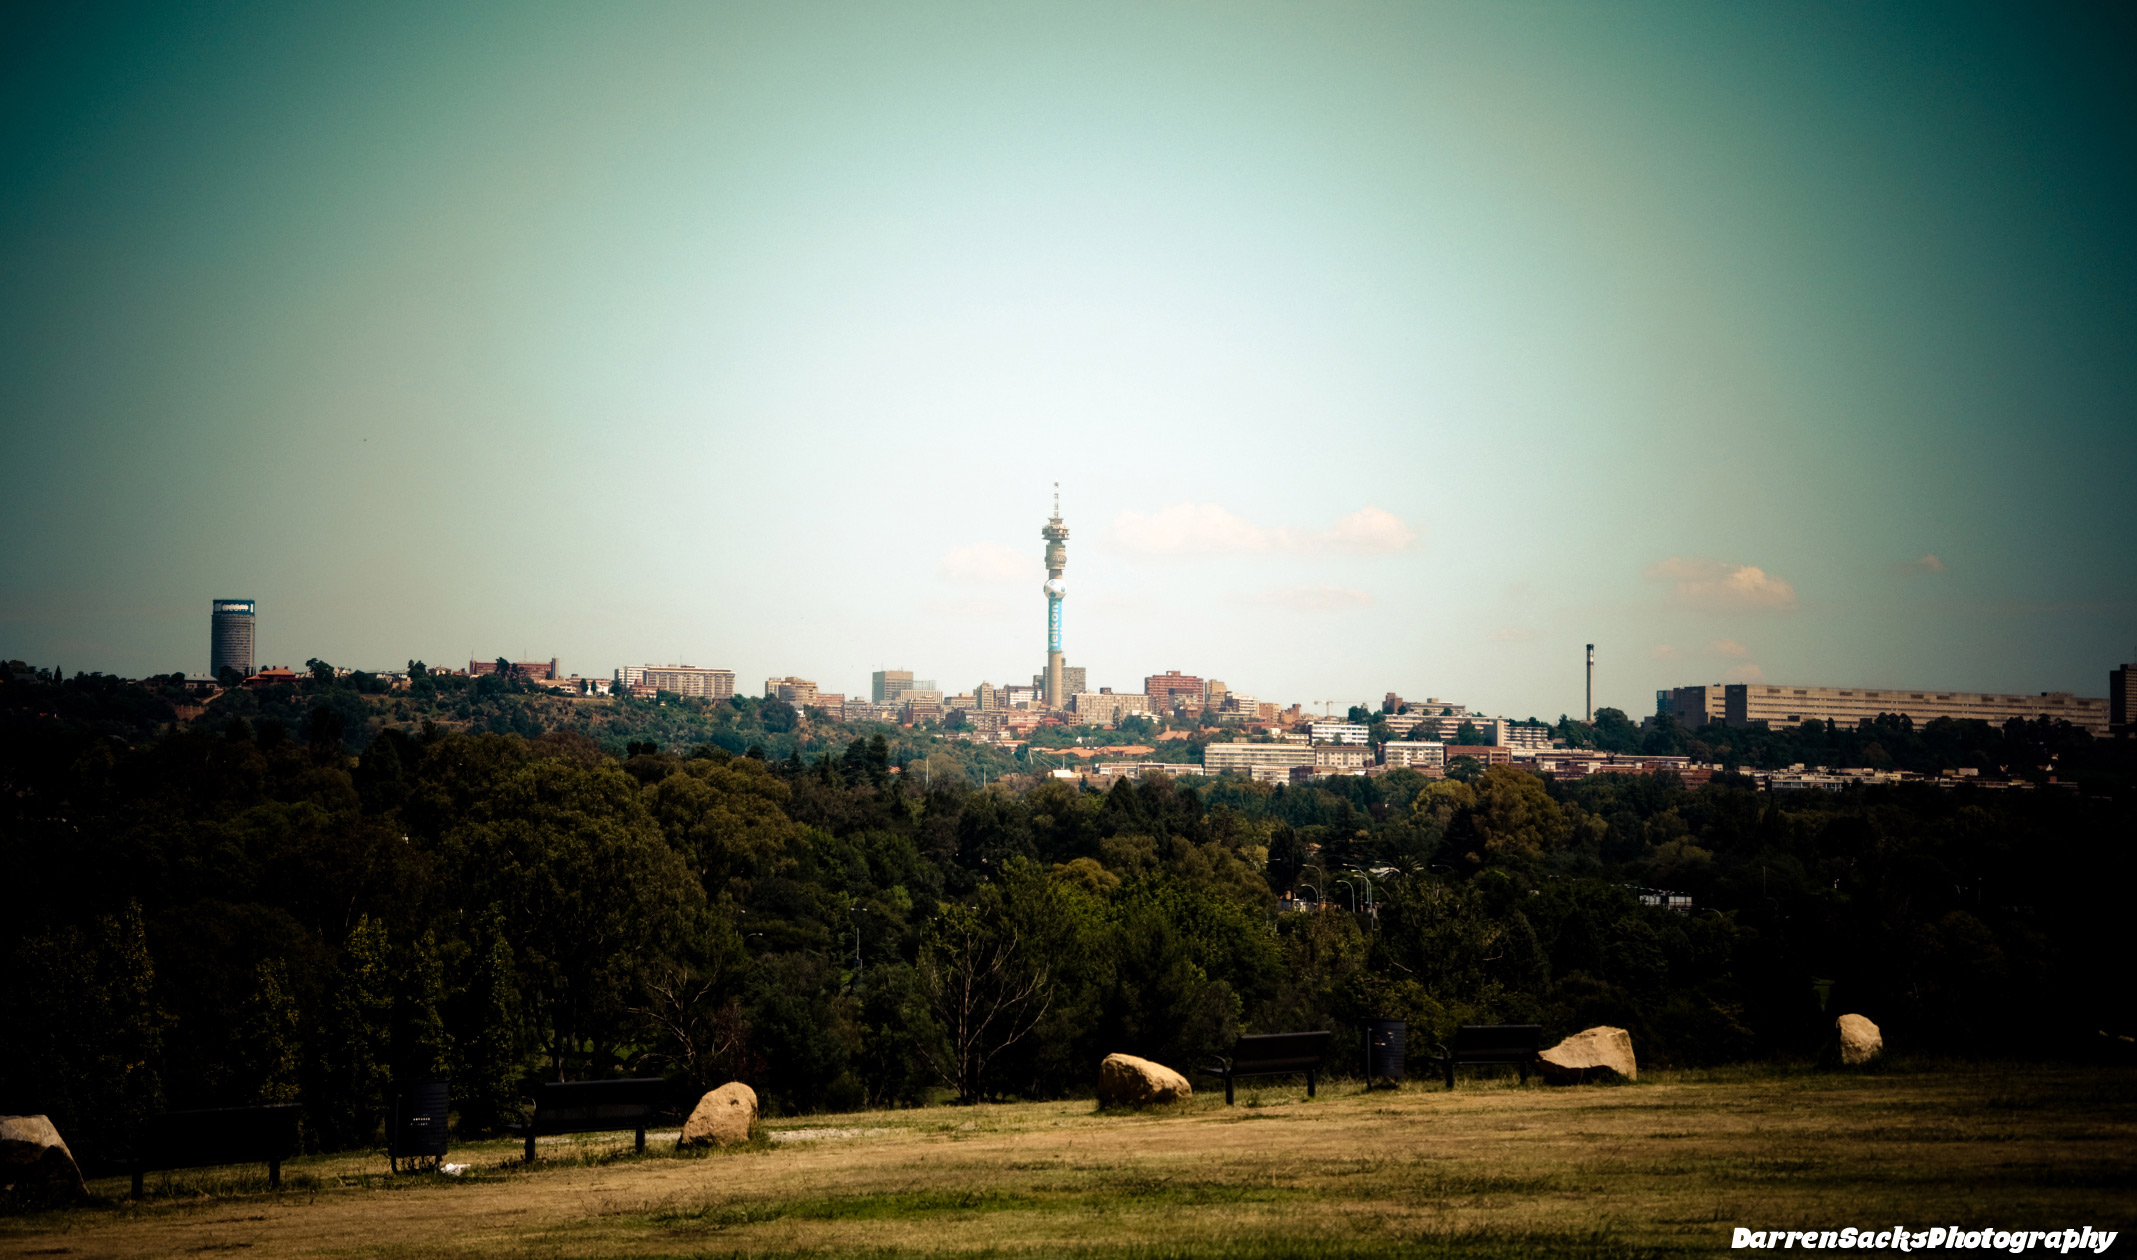 Johannesburg Skyline With Hillbrow Tower In The Centre By